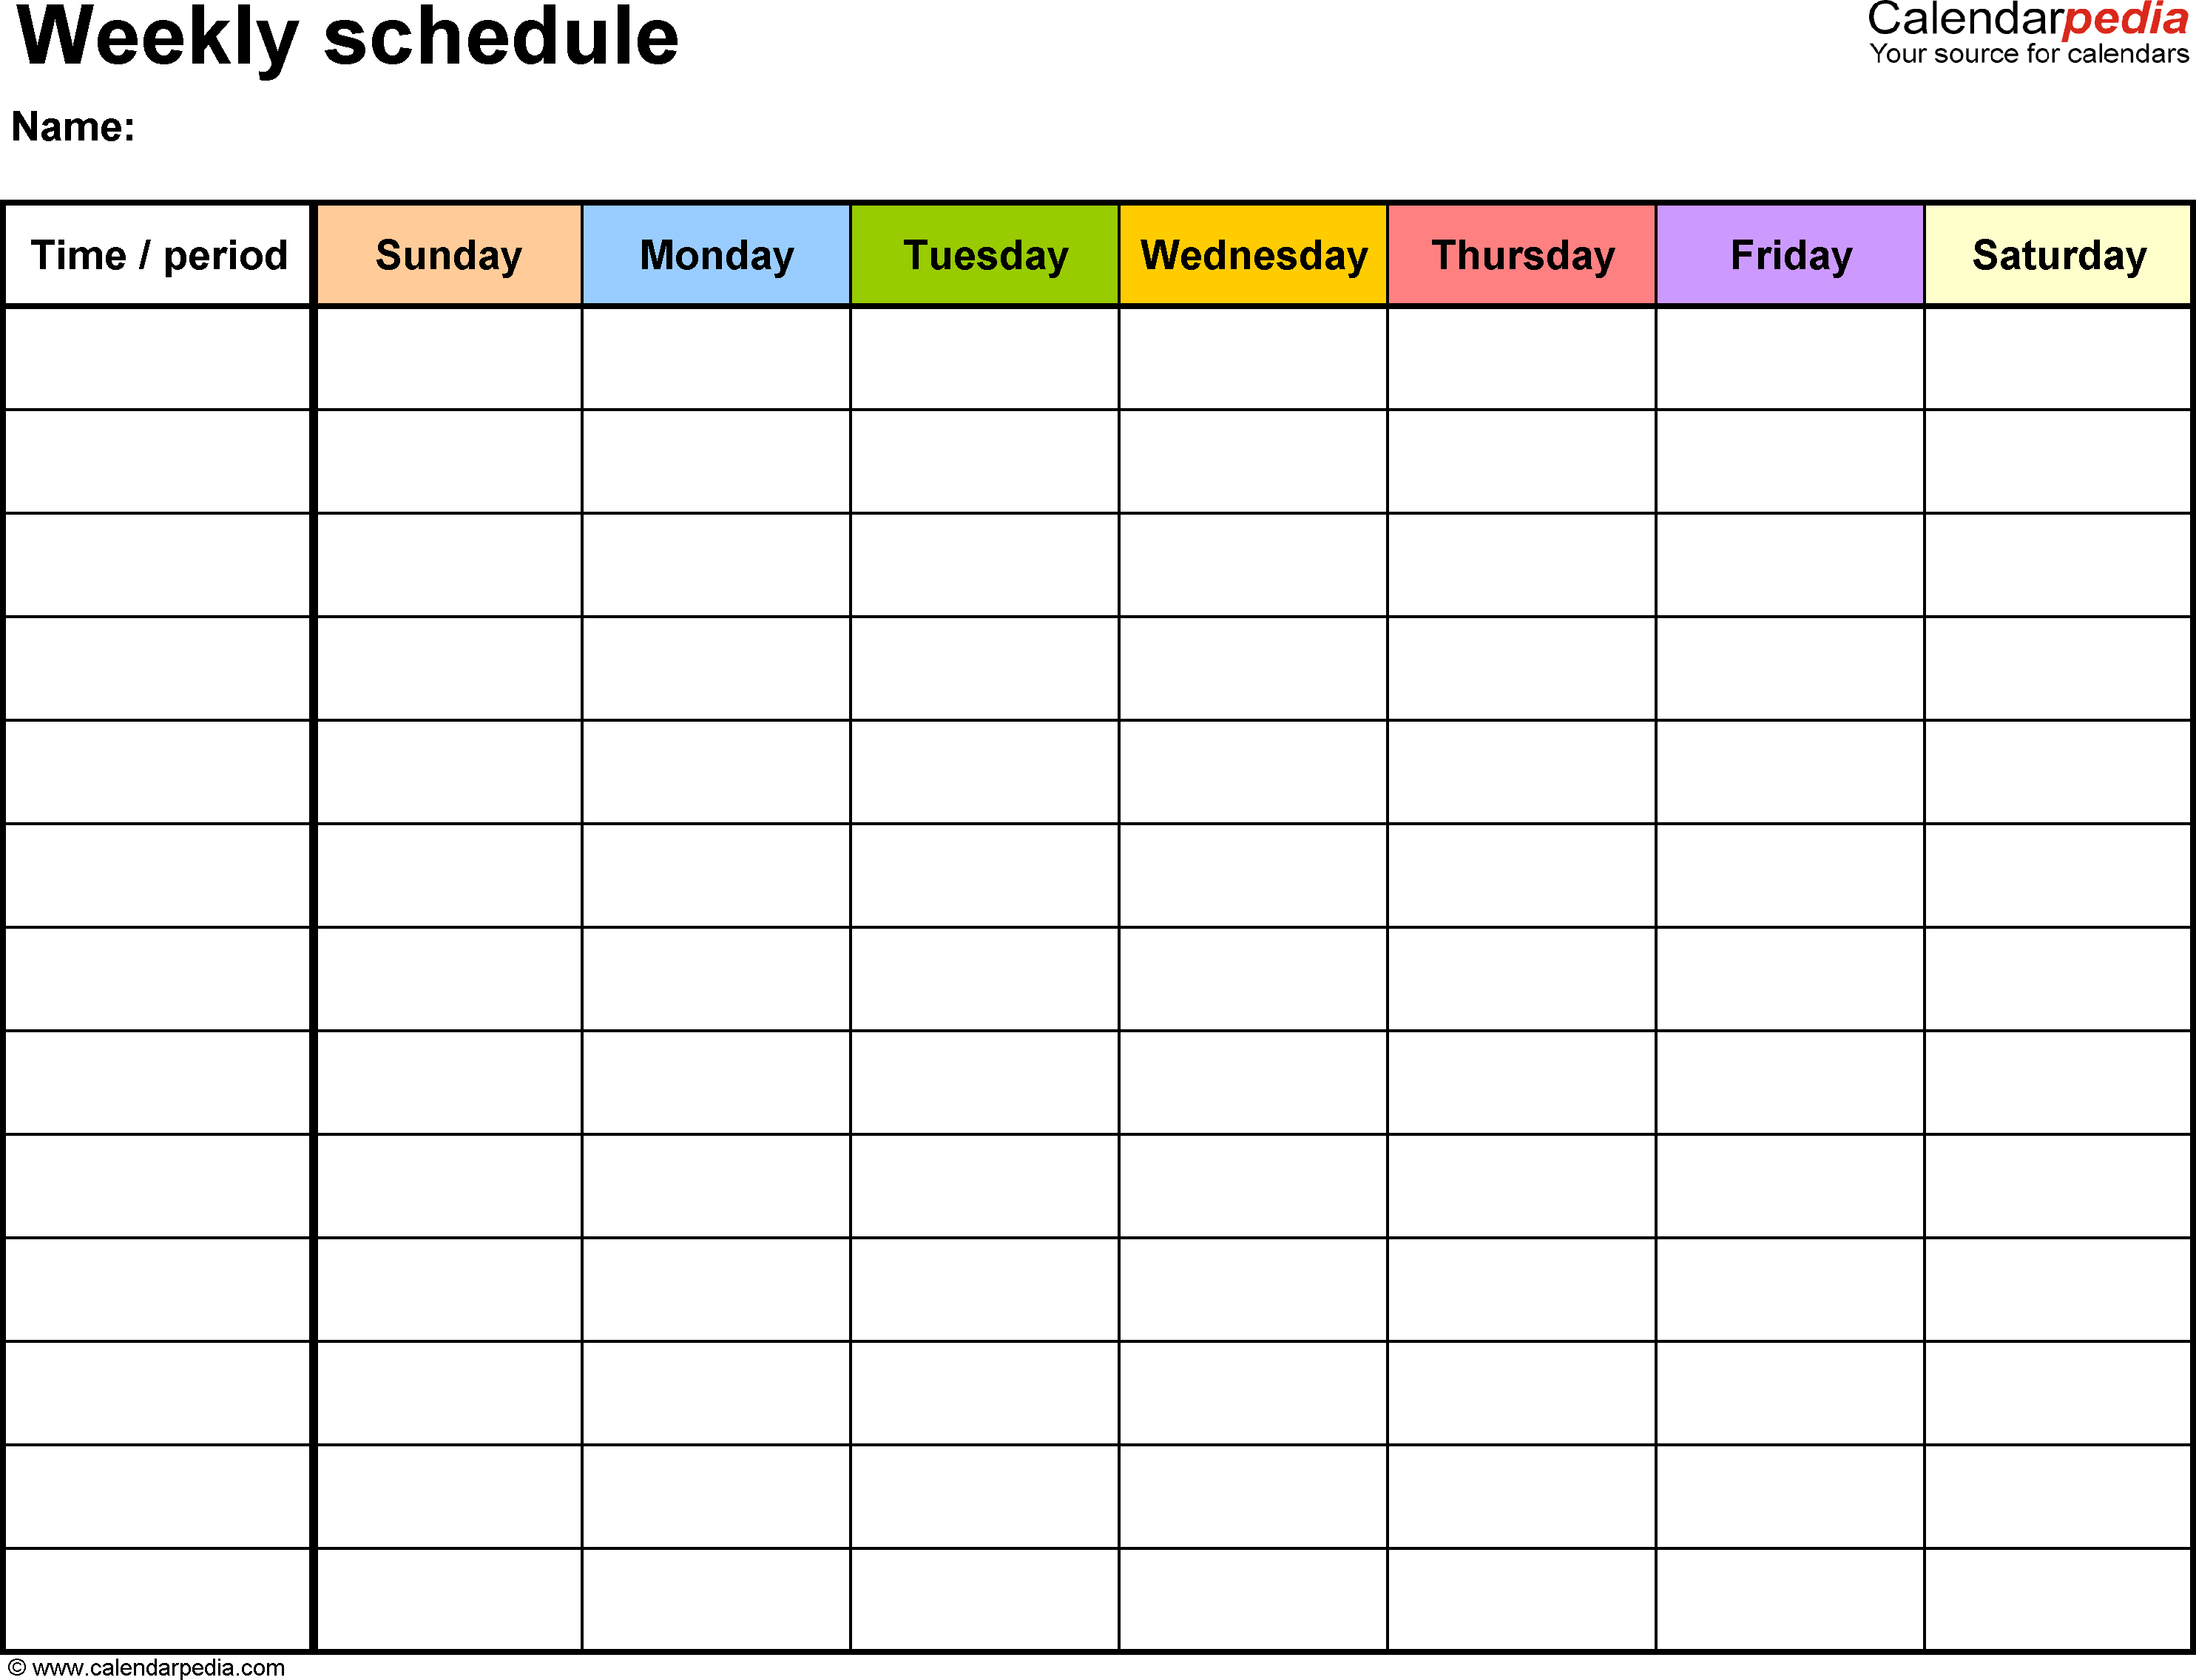 Free Weekly Schedule Templates For Excel - 18 Templates inside Planning Calendar Template Excel